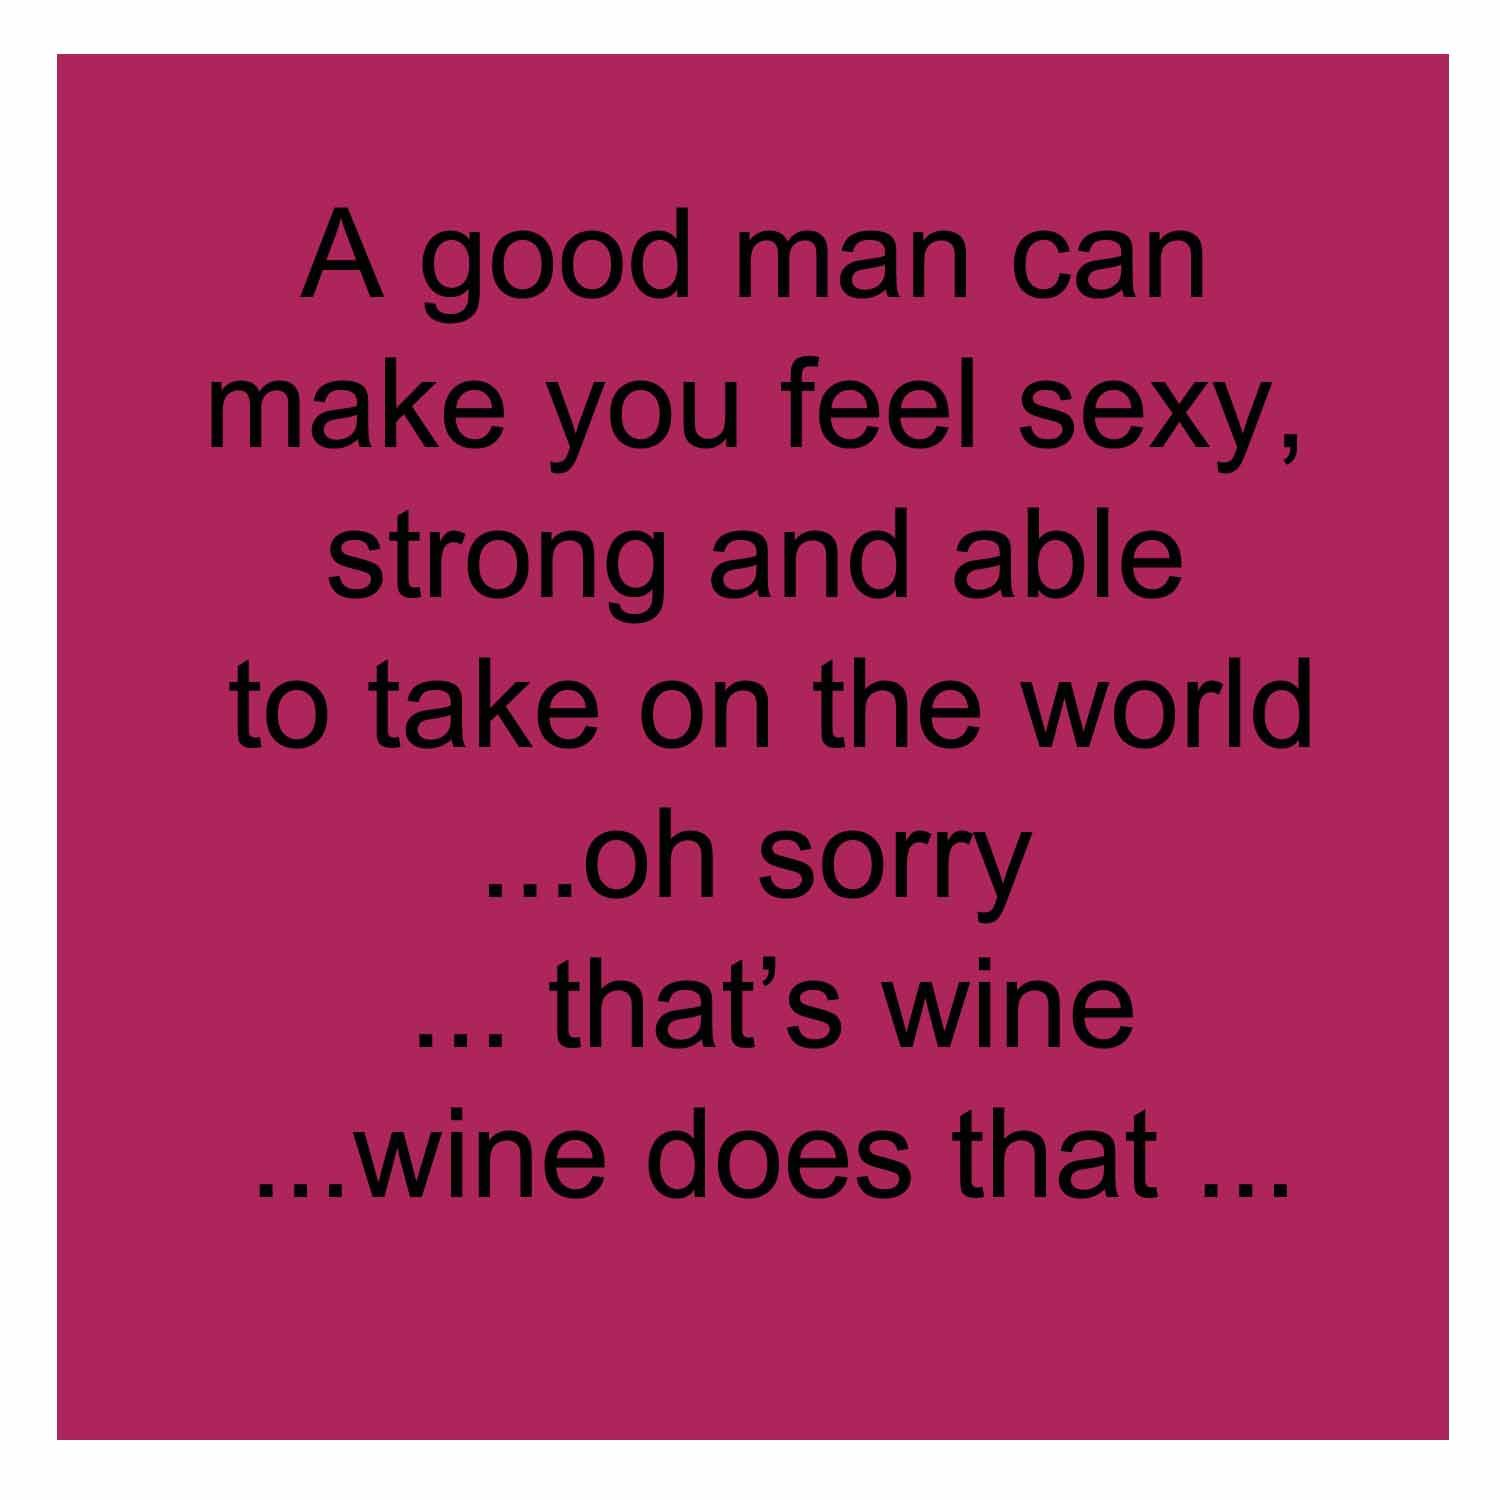 Poems And Quotes About Life Ah Yes Life With Winetakeontheworld  Wine Country  Pinterest